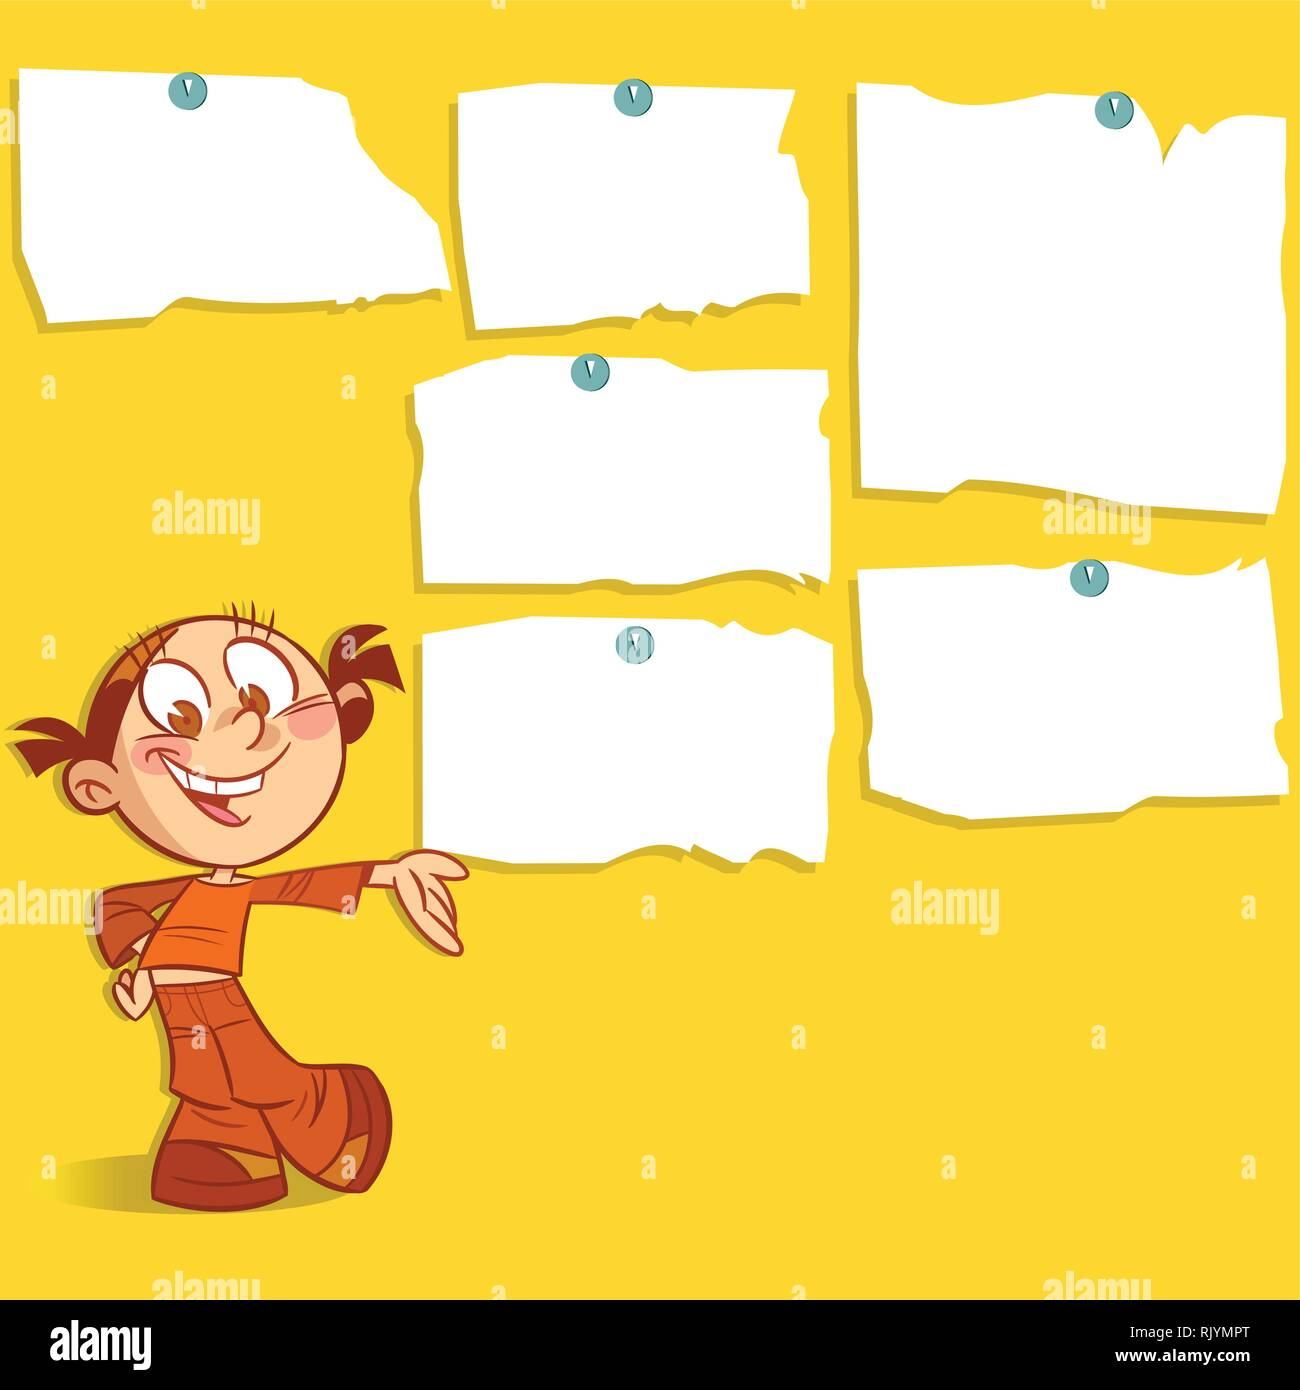 The illustration shows a cartoon girl. She smiles and points to the wall with ads. Illustration done on separate layers. - Stock Image